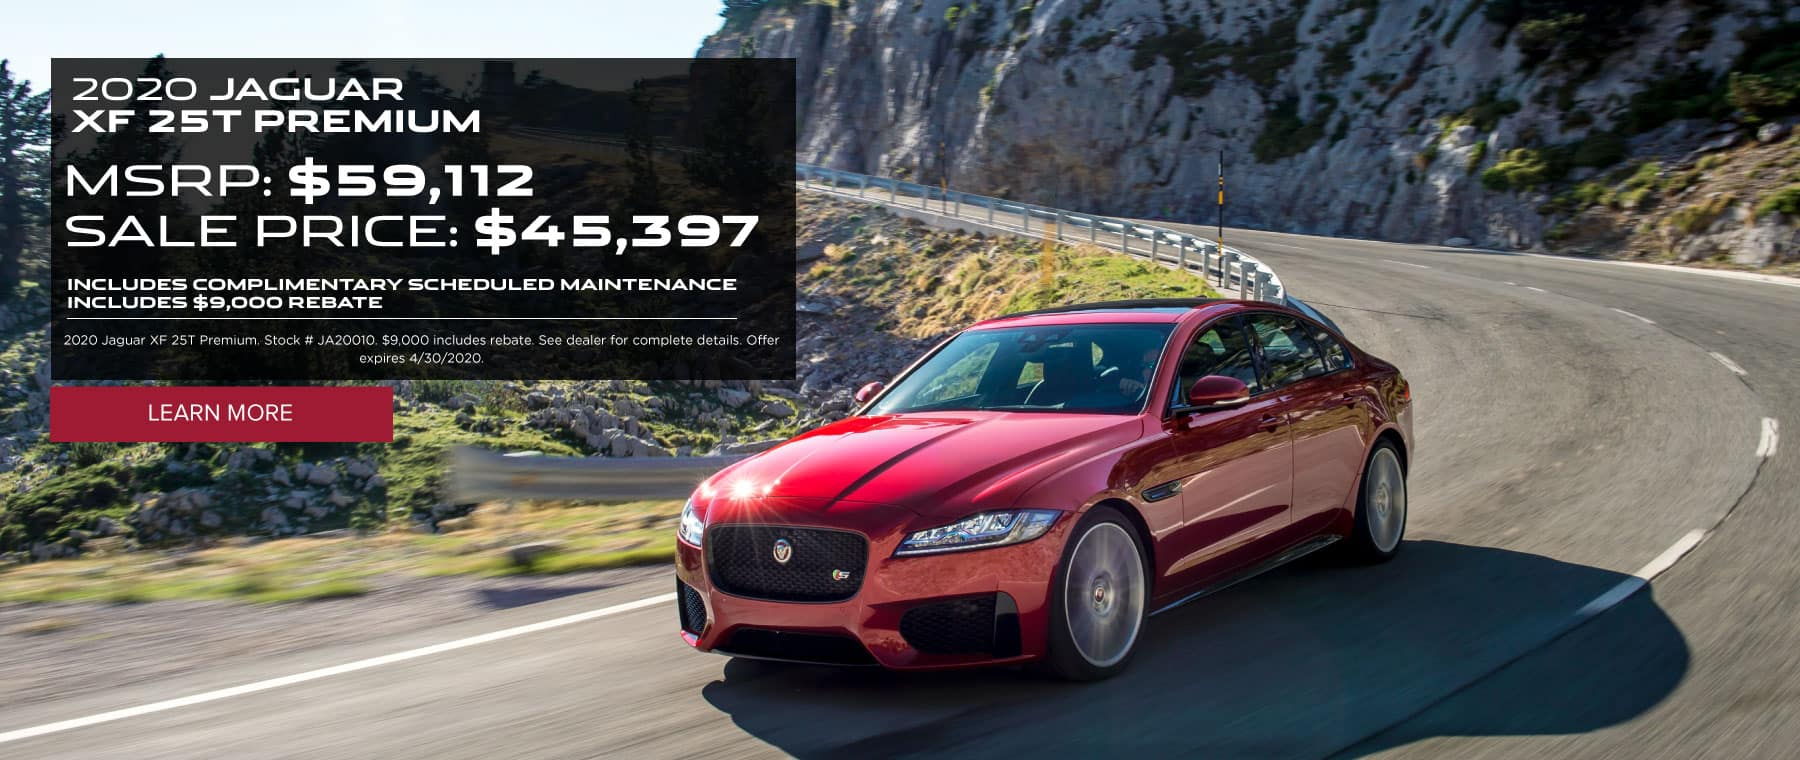 2020 JAGUAR XF 25T PREMIUM MSRP: $59,112 SALE PRICE: $45,399 INCLUDES COMPLIMENTARY SCHEDULED MAINTENANCE Includes $9000 rebate. 2020 Jaguar XF 25T Premium. Stock # JA20010. $9,000 includes rebate. See dealer for complete details. Offer expires 3/2/2020.  Click to learn more.. White XF driving along curved road.